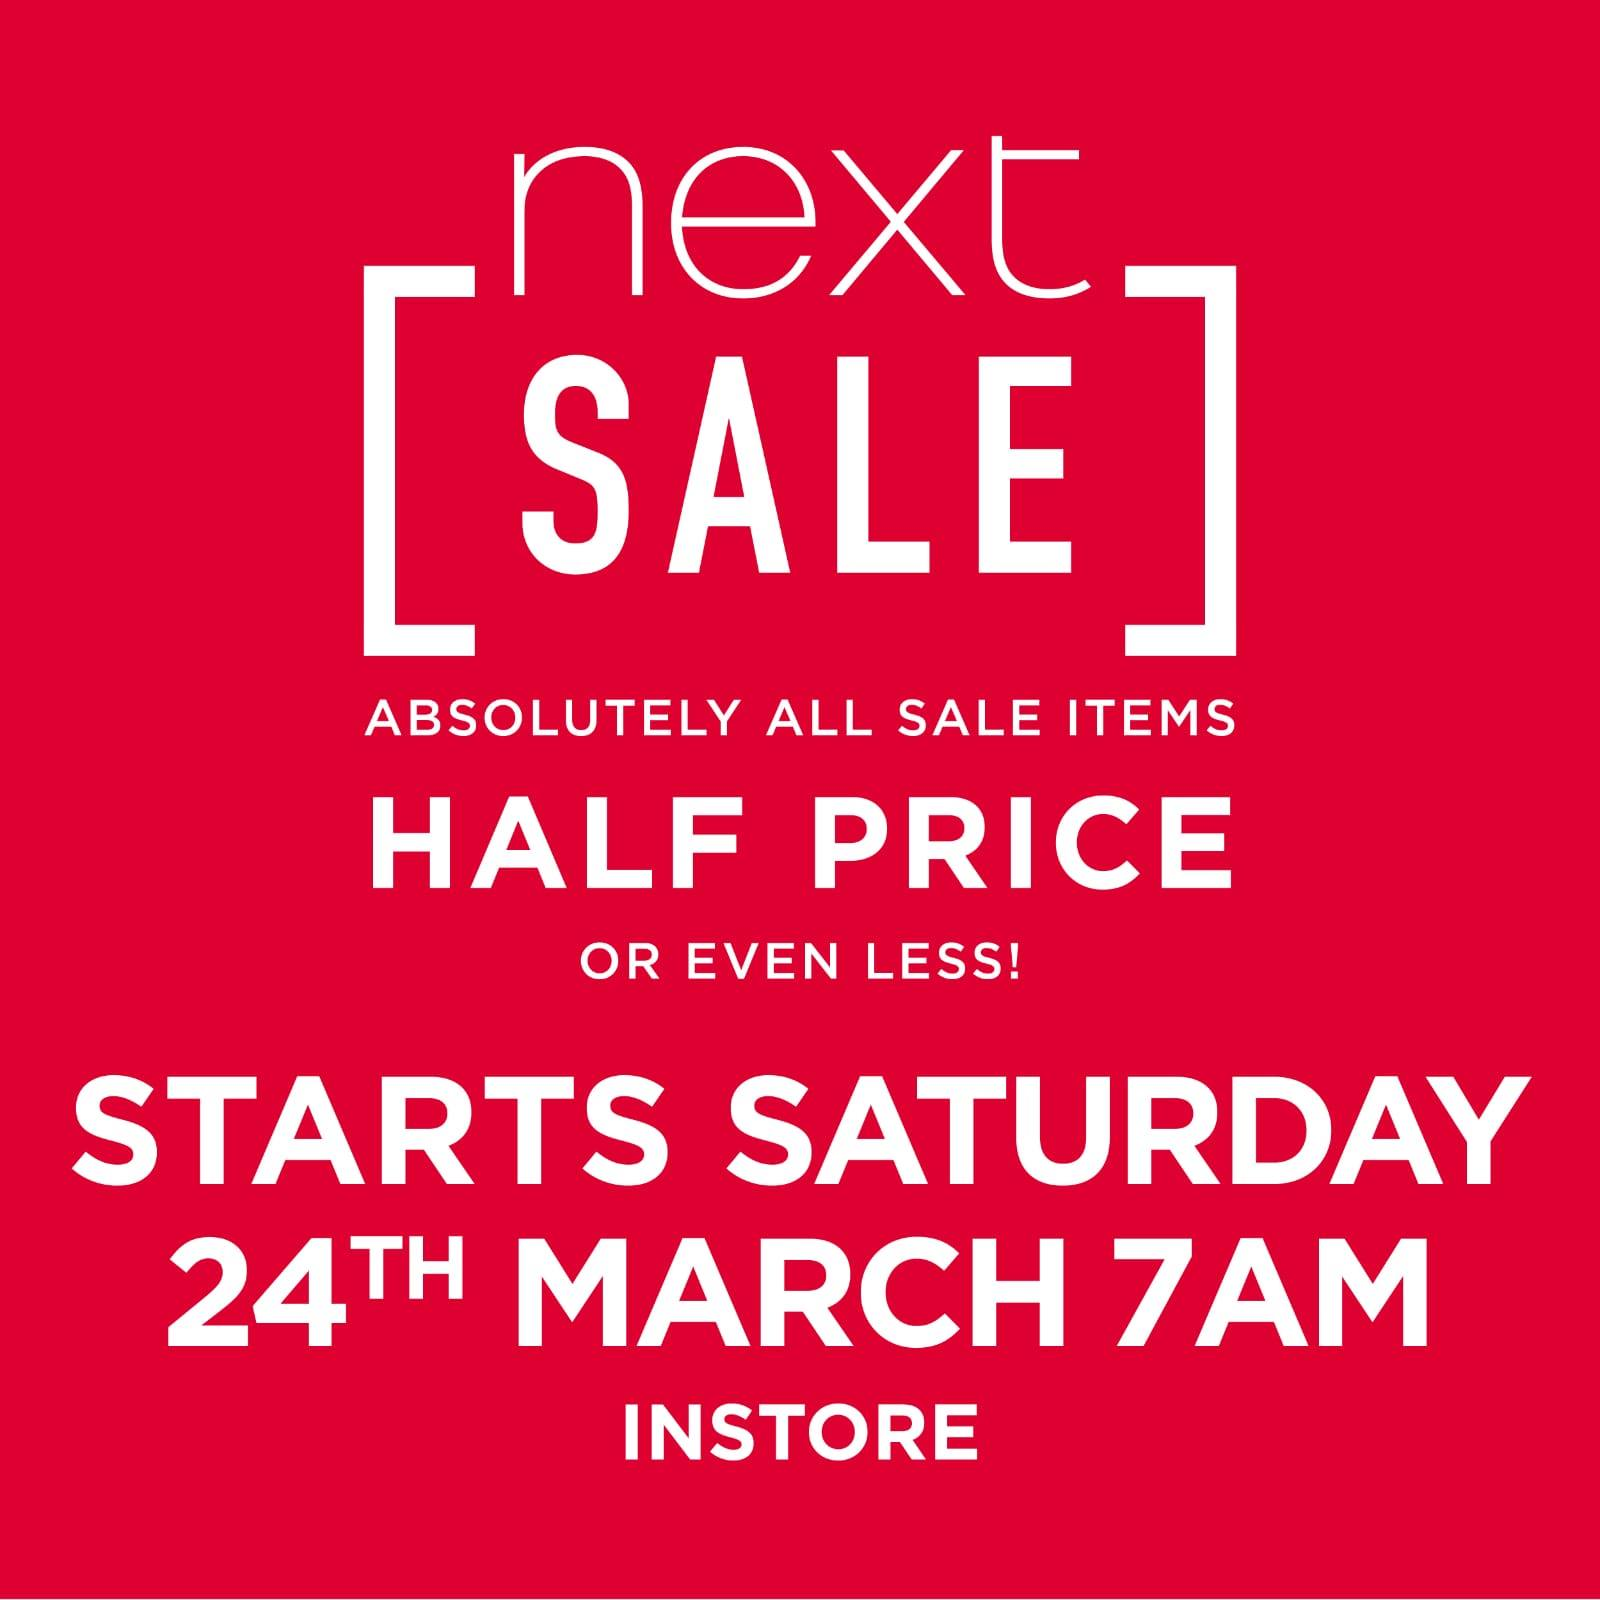 edcdd436093ca The Next sale Sligo 1/2 price midseason sale starts this Saturday morning  March 24th at Quayside at 7am! All sale items half price or less!